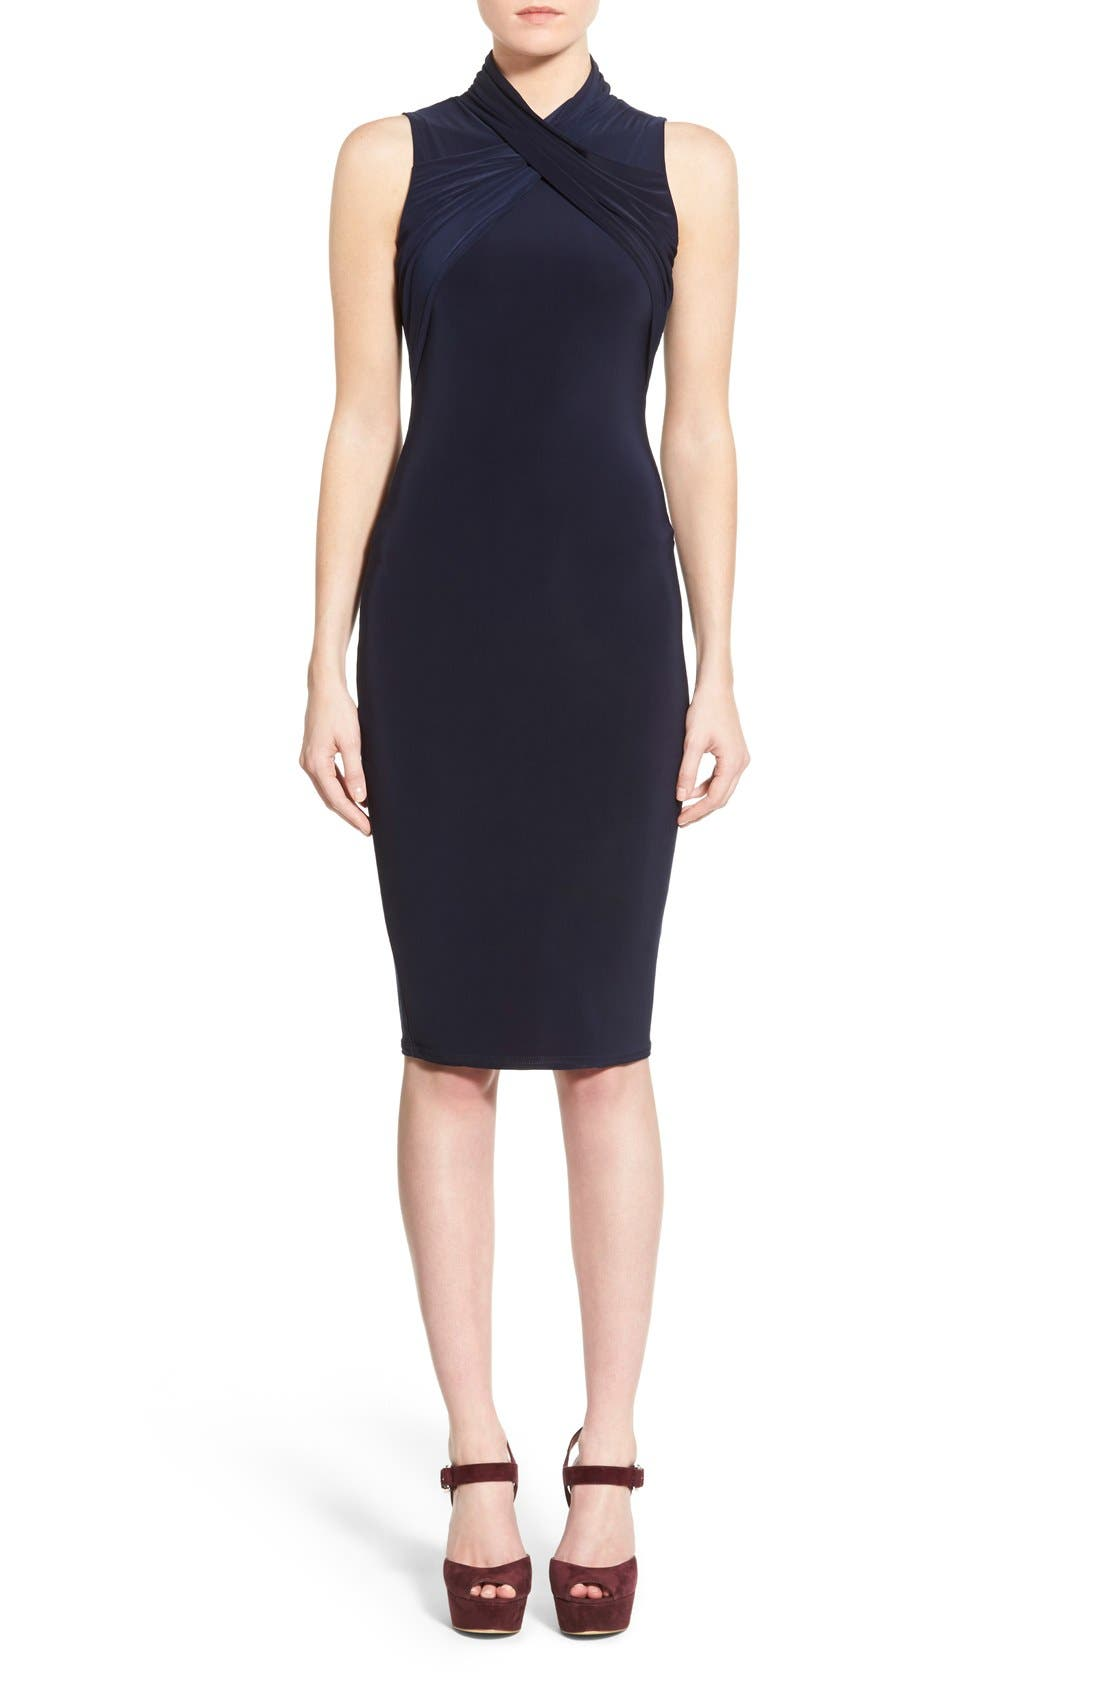 Alternate Image 1 Selected - Missguided Twist Neck Body-Con Dress